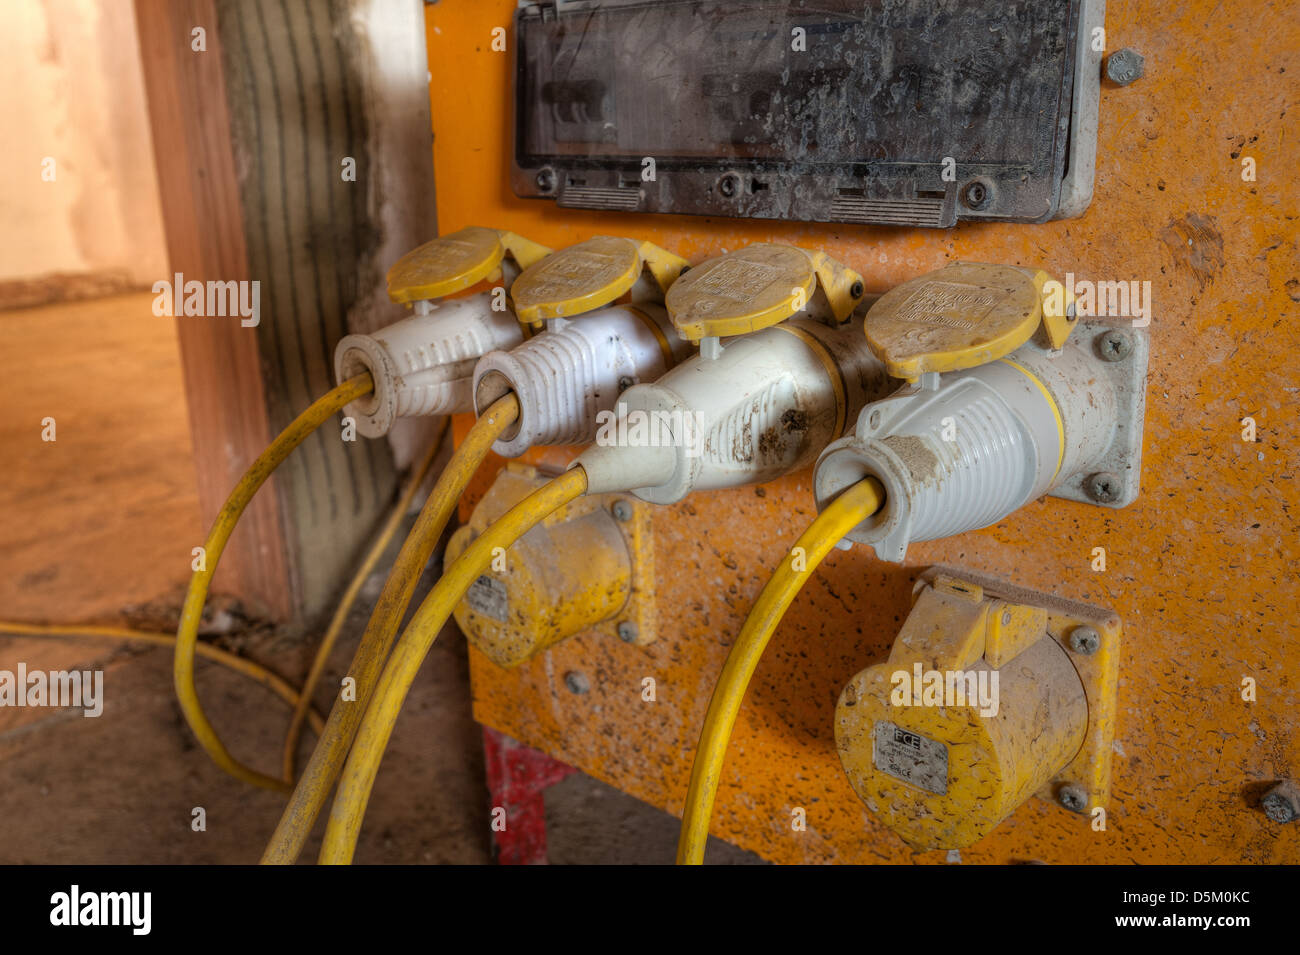 hight resolution of electrical cables plugs and wires from a heavy duty yellow 110 volt building power supply isolation